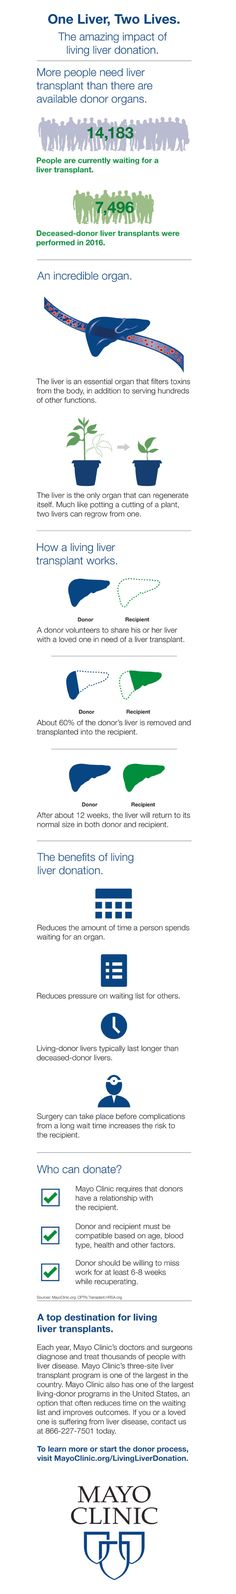 The amazing impact of living liver donation.